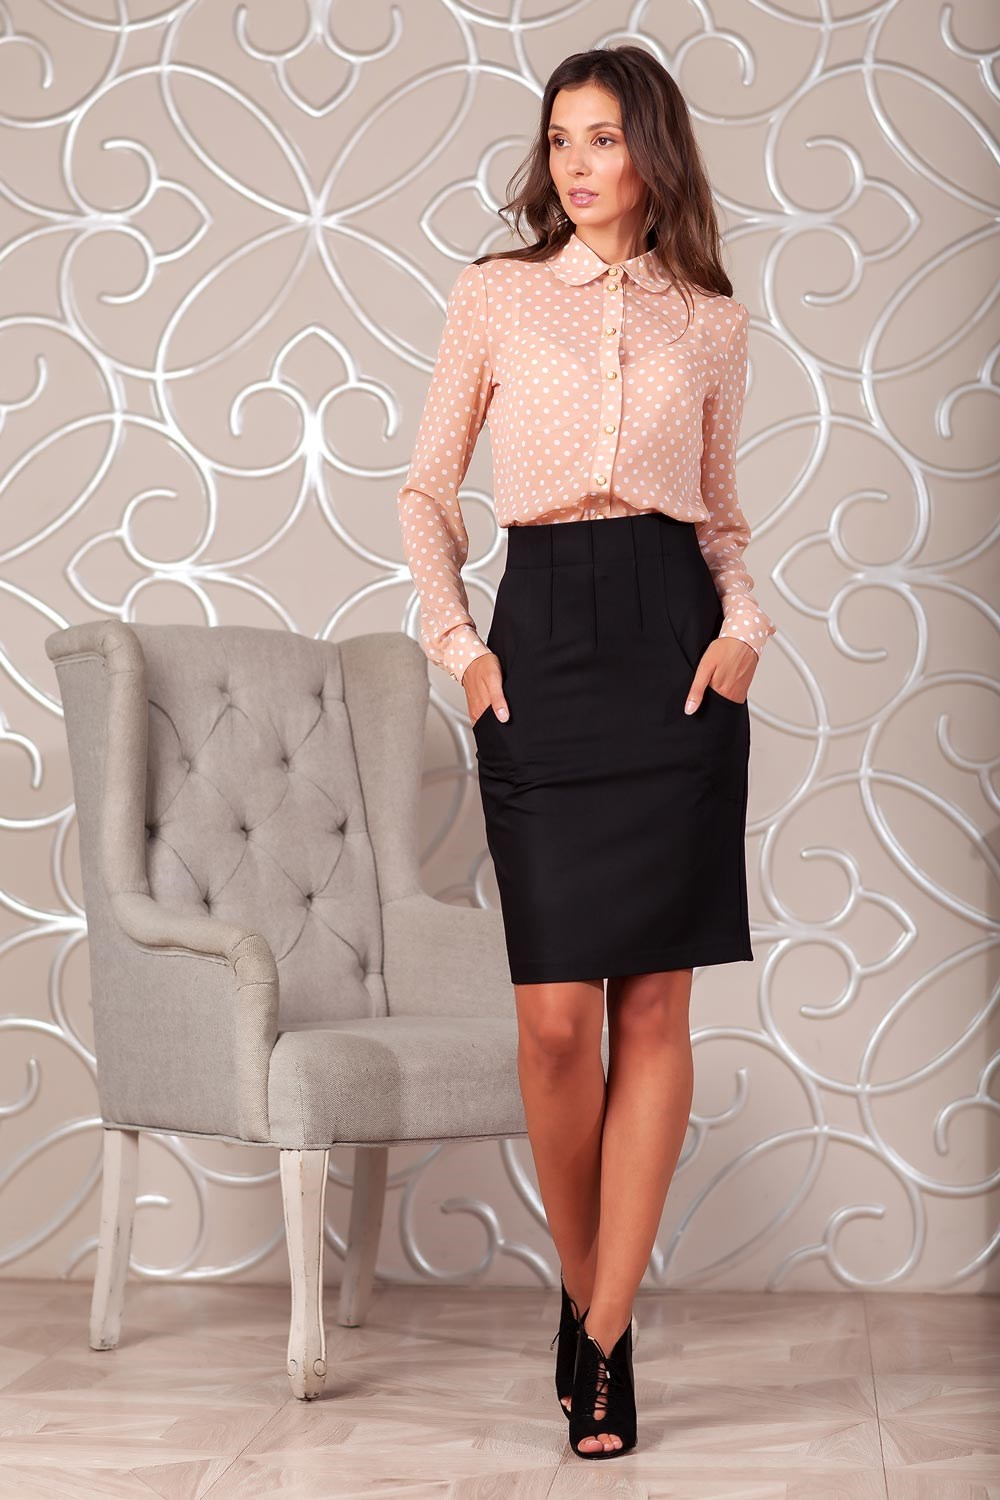 Skirt 2401800-02 double breasted pencil skirt